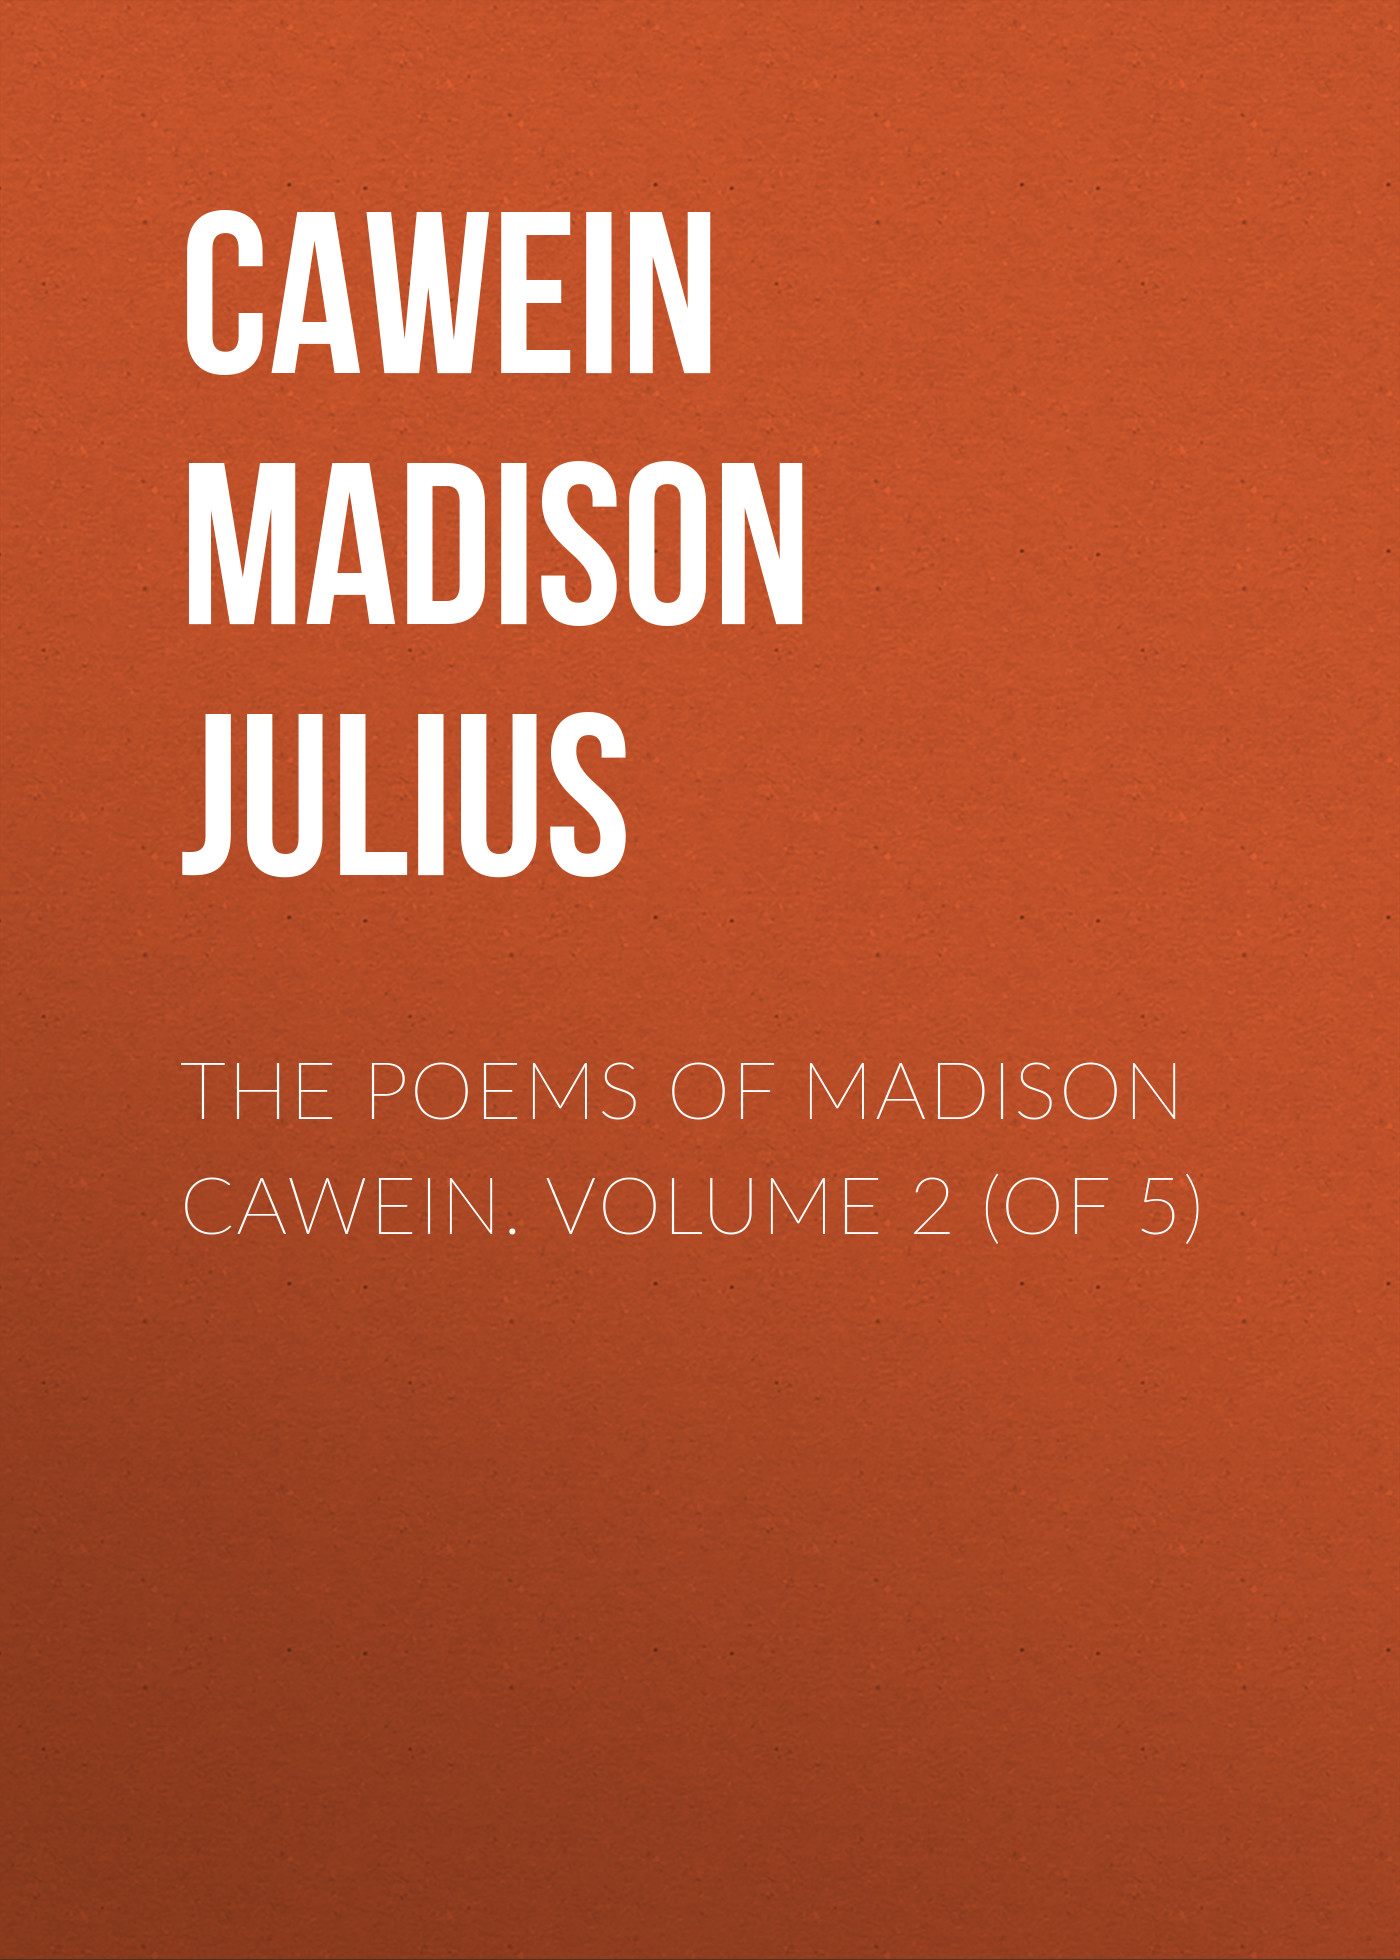 Cawein Madison Julius The Poems of Madison Cawein. Volume 2 (of 5) complete poems of hart crane